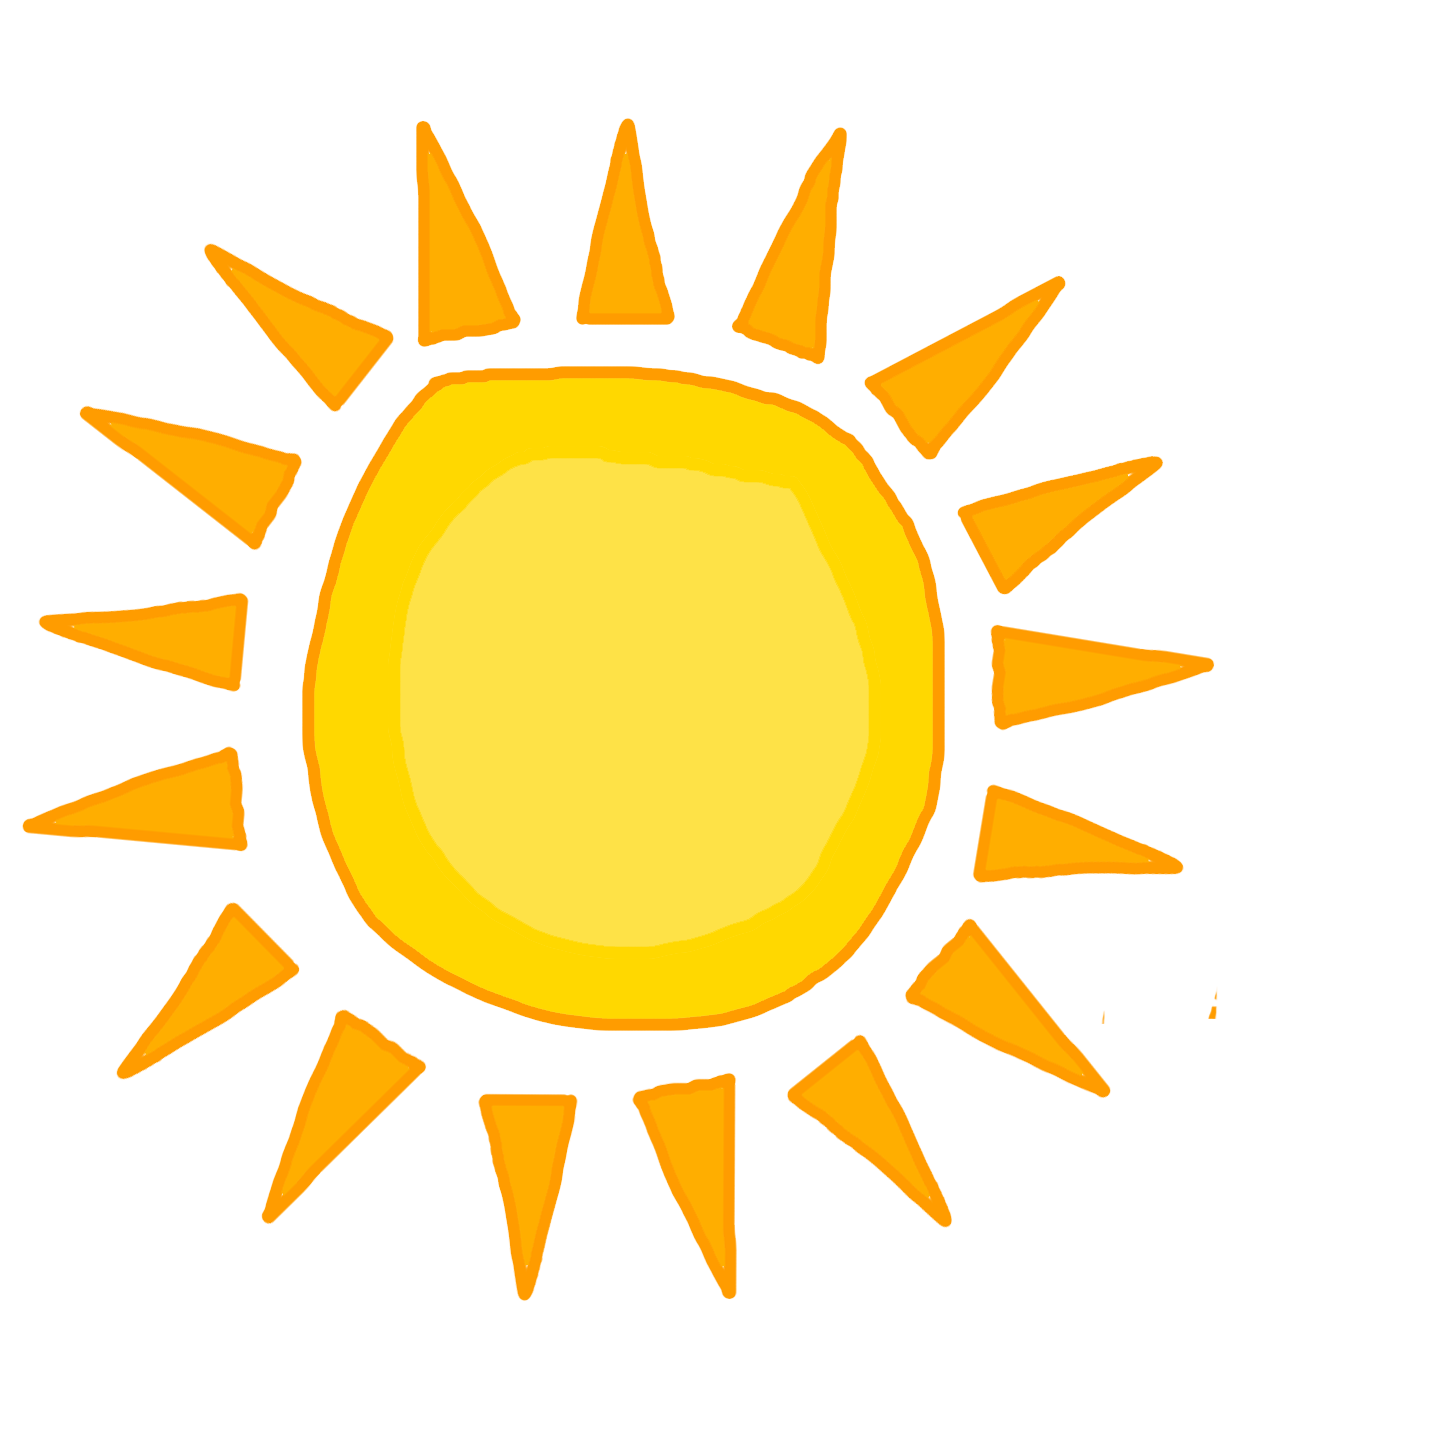 PNG The Sun - 60269